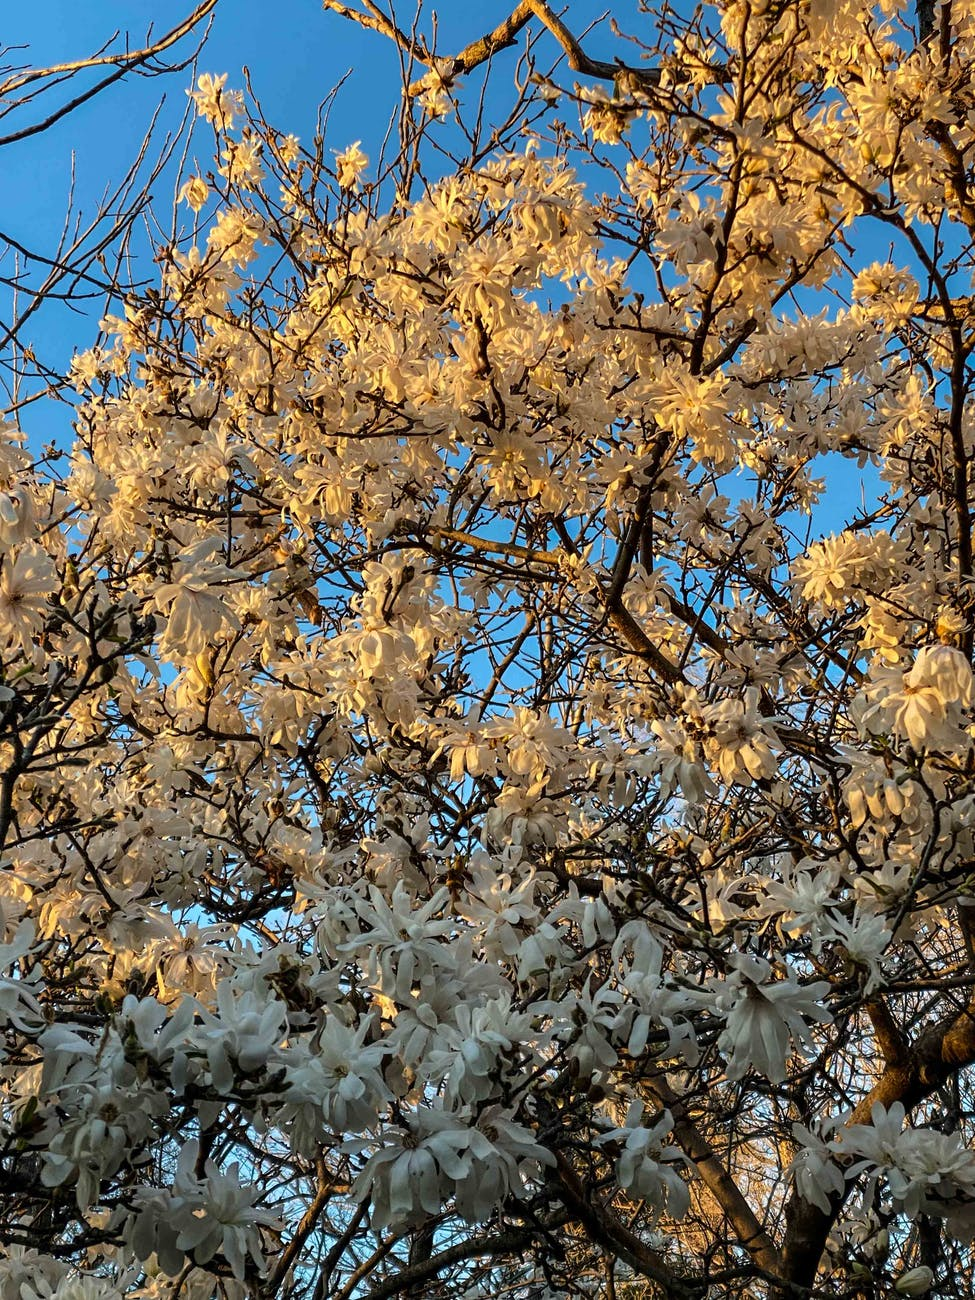 blooming tree with white blossoms under blue sky